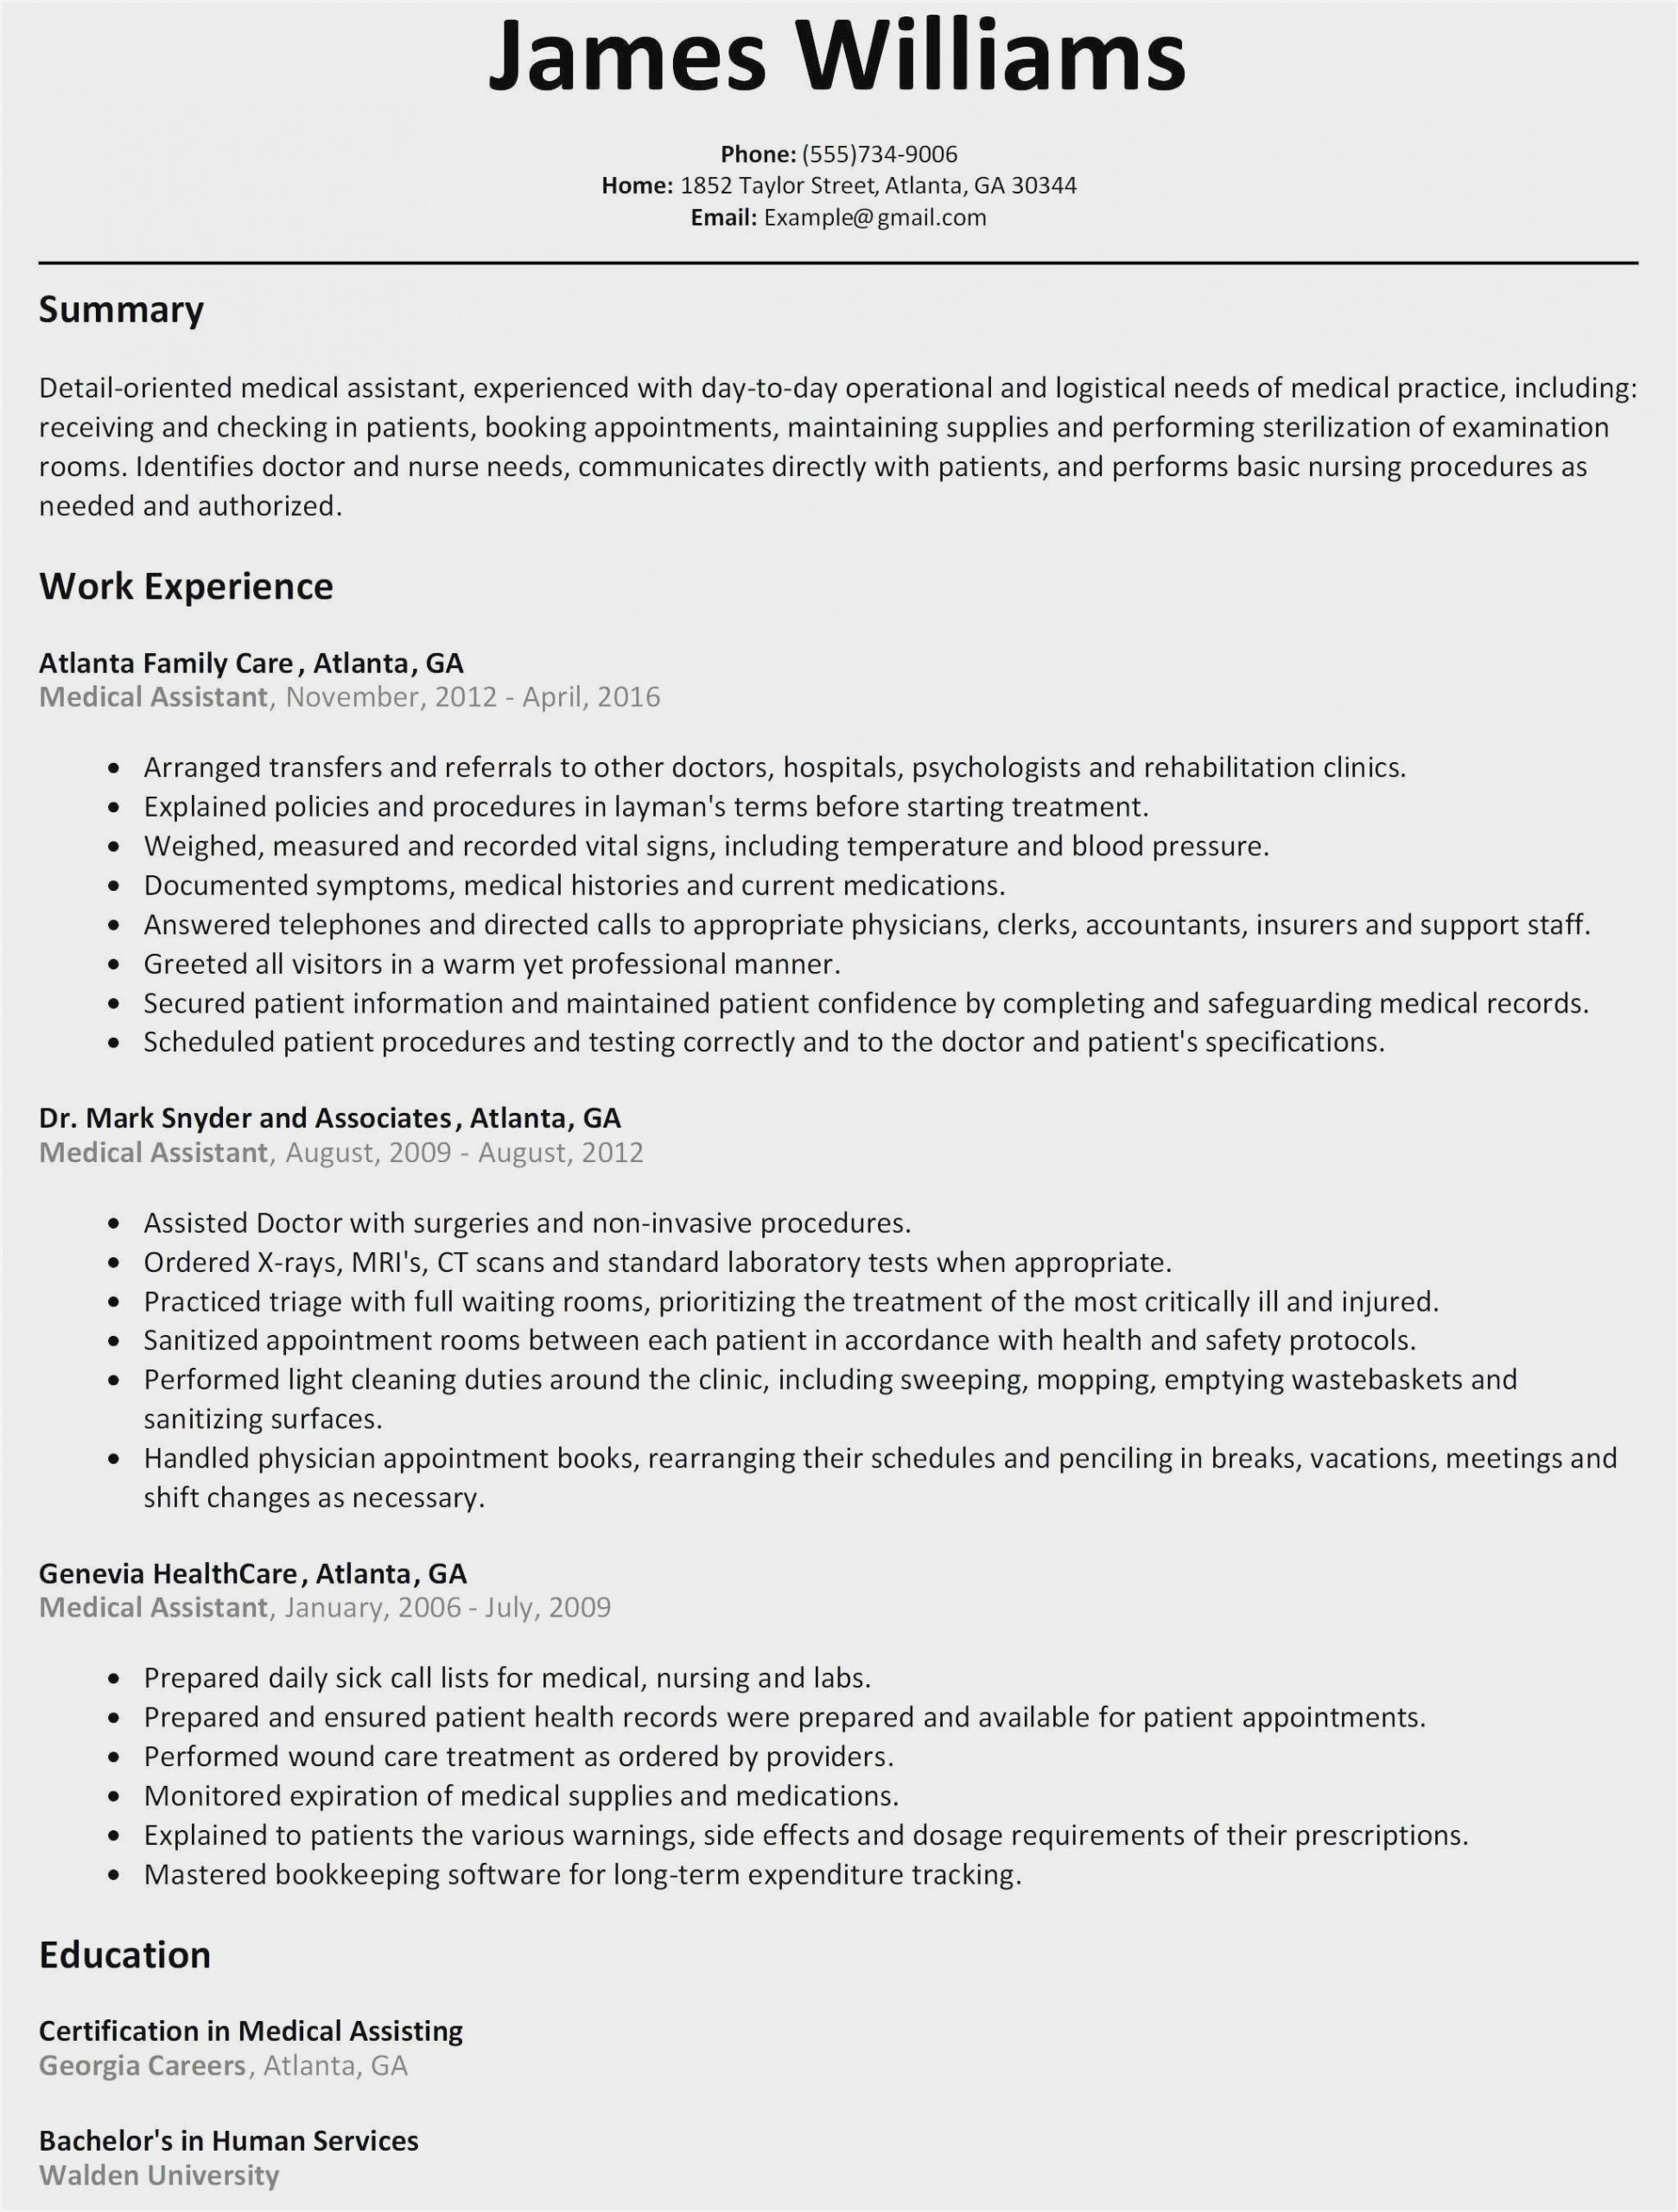 resume objective examples louiesportsmouth work from home objectives for nurses scaled Resume Work From Home Resume Objective